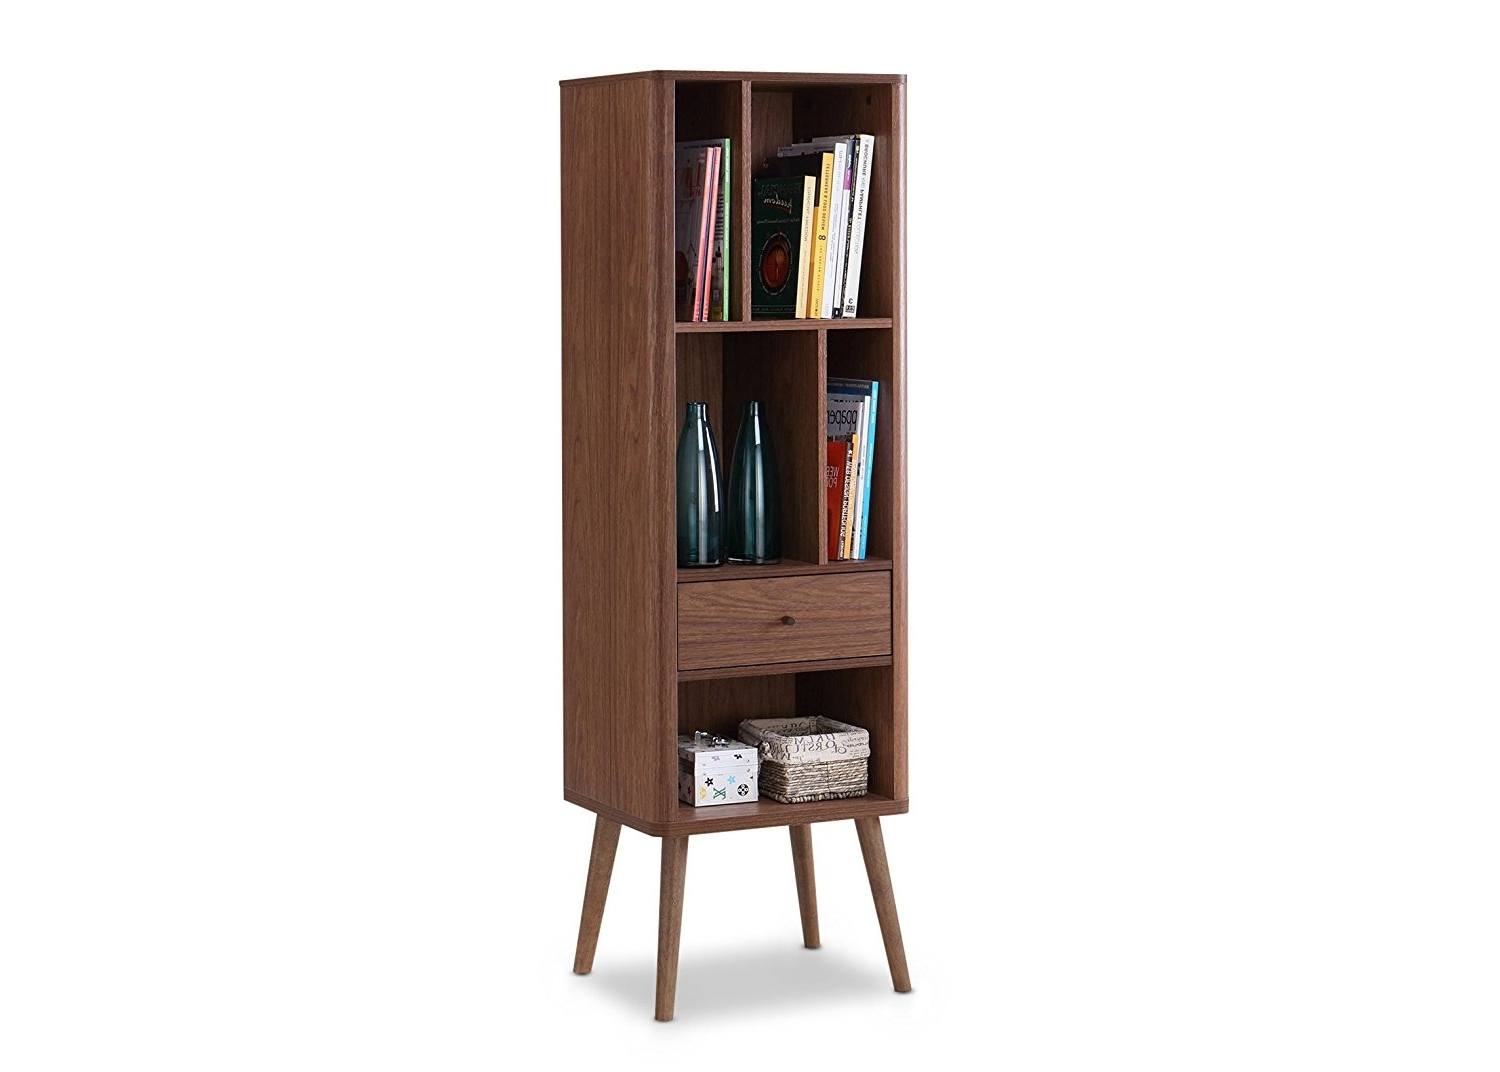 Amazon: Baxton Furniture Studios Ellingham Mid Century Retro Pertaining To Best And Newest Midcentury Bookcases (View 12 of 15)